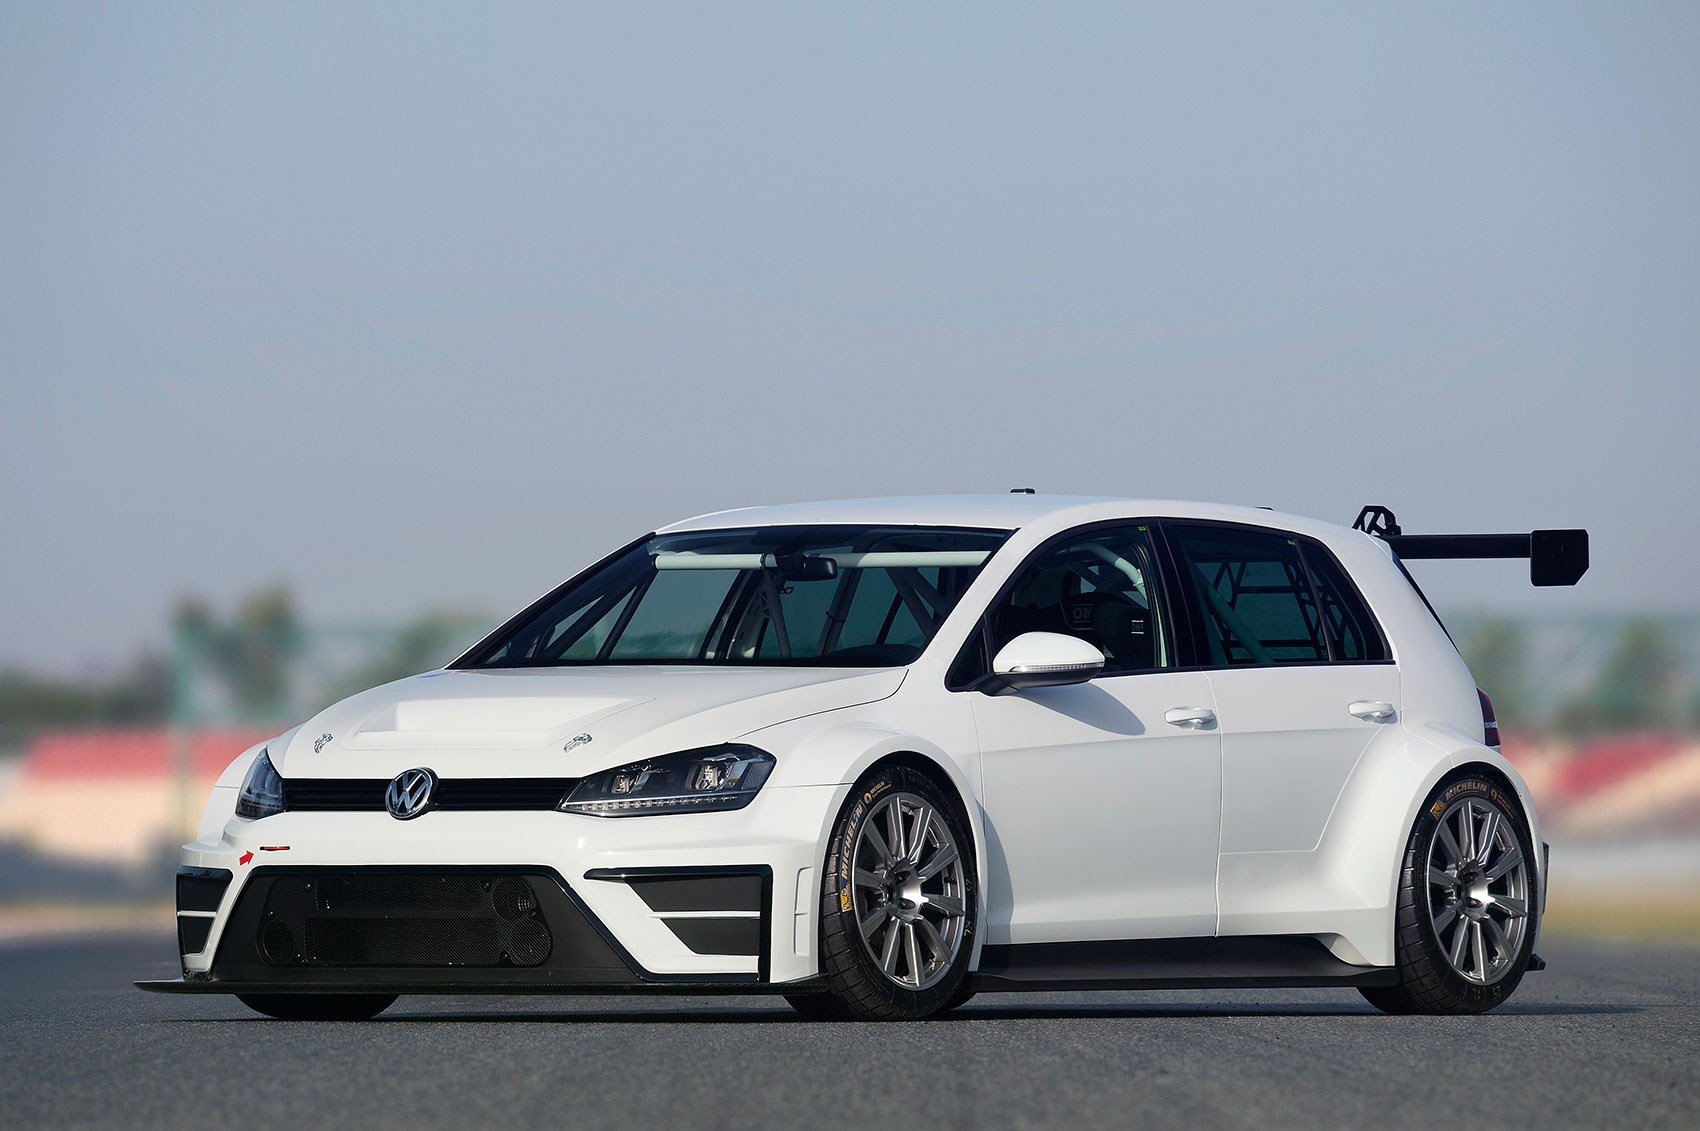 Vw Dabbles In Touring Cars With New 2015 Golf Racer By Car